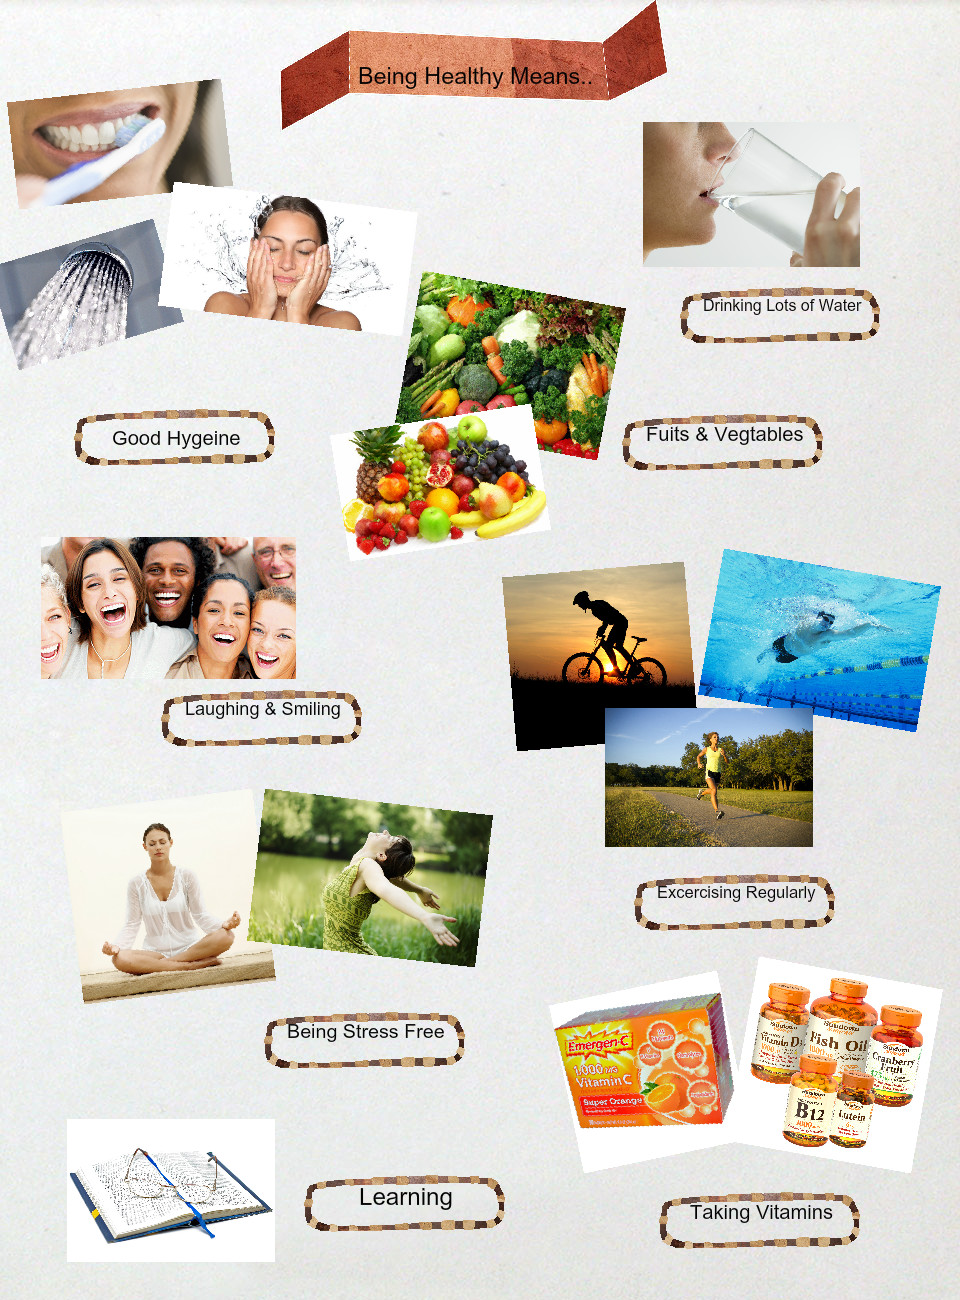 Being Healthy Means